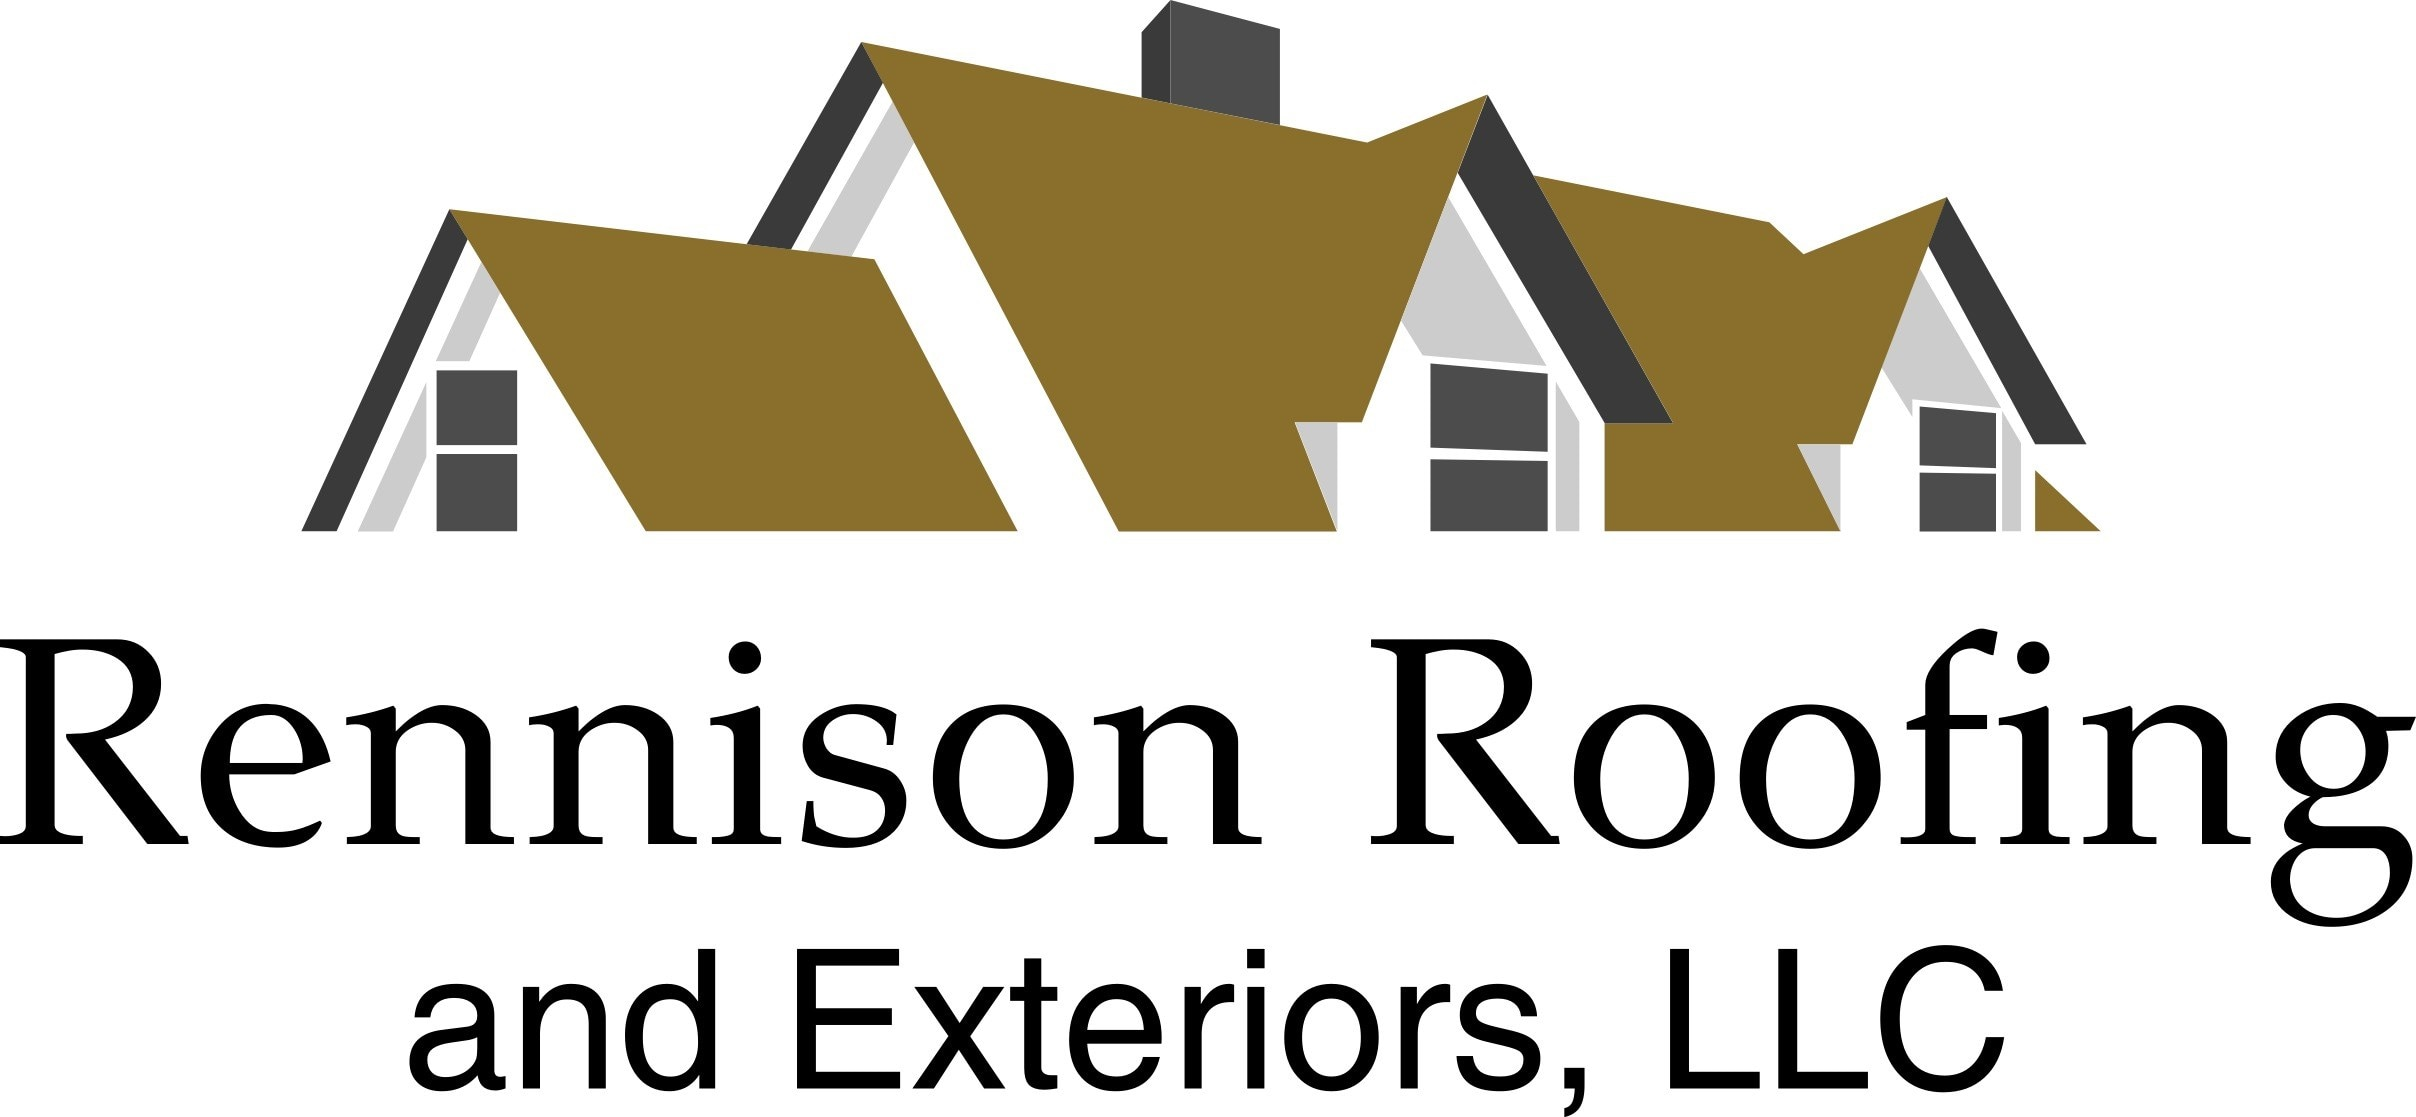 Rennison Roofing and Exteriors, LLC logo